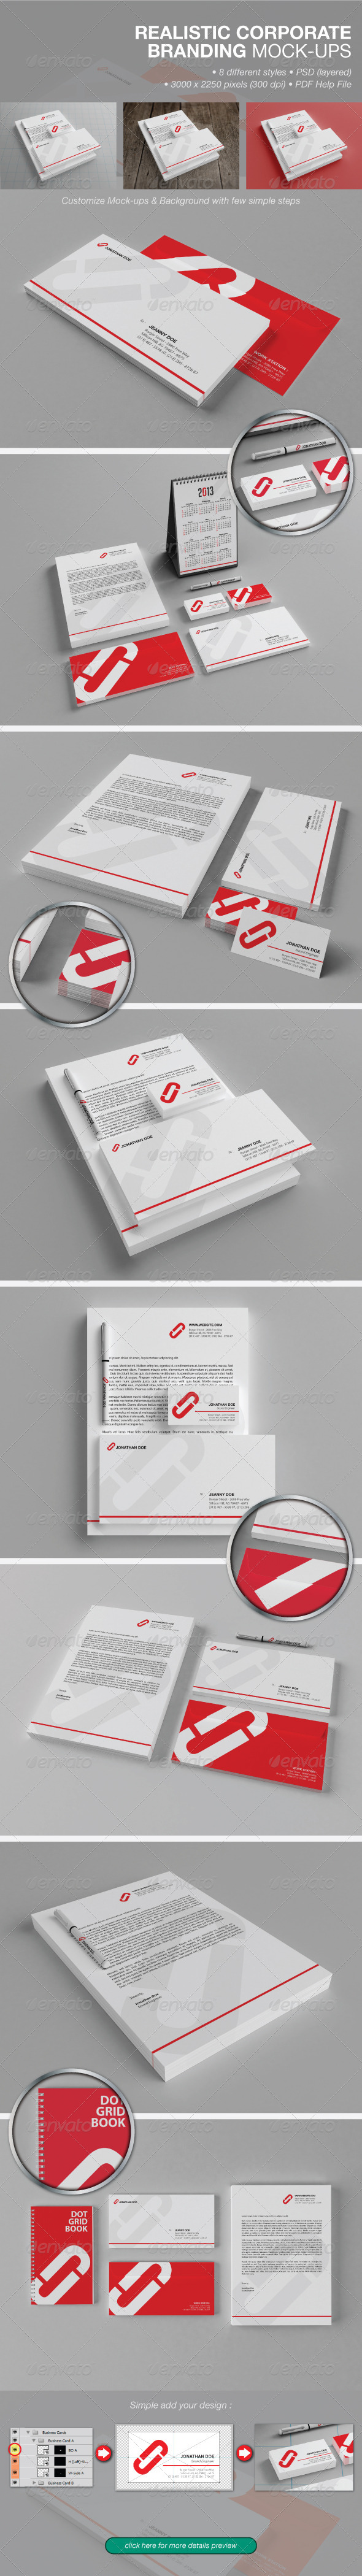 Realistic Corporate Branding Mock-ups - Product Mock-Ups Graphics